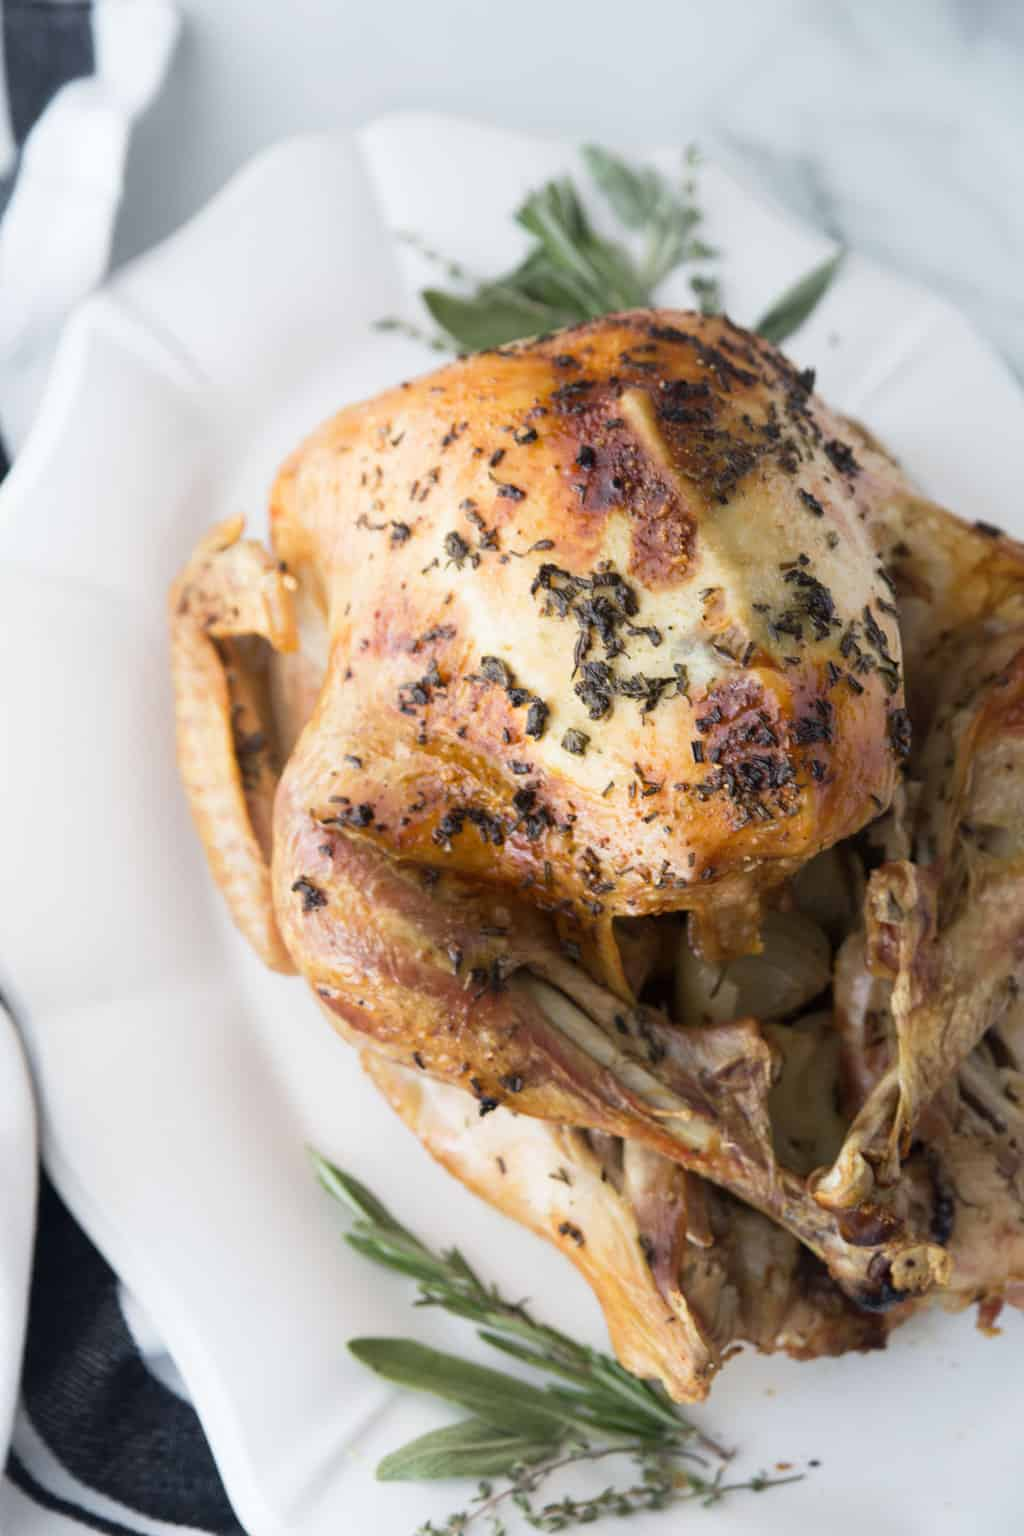 finished Thanksgiving Turkey on a white platter on a granite counter with herbs as garnish